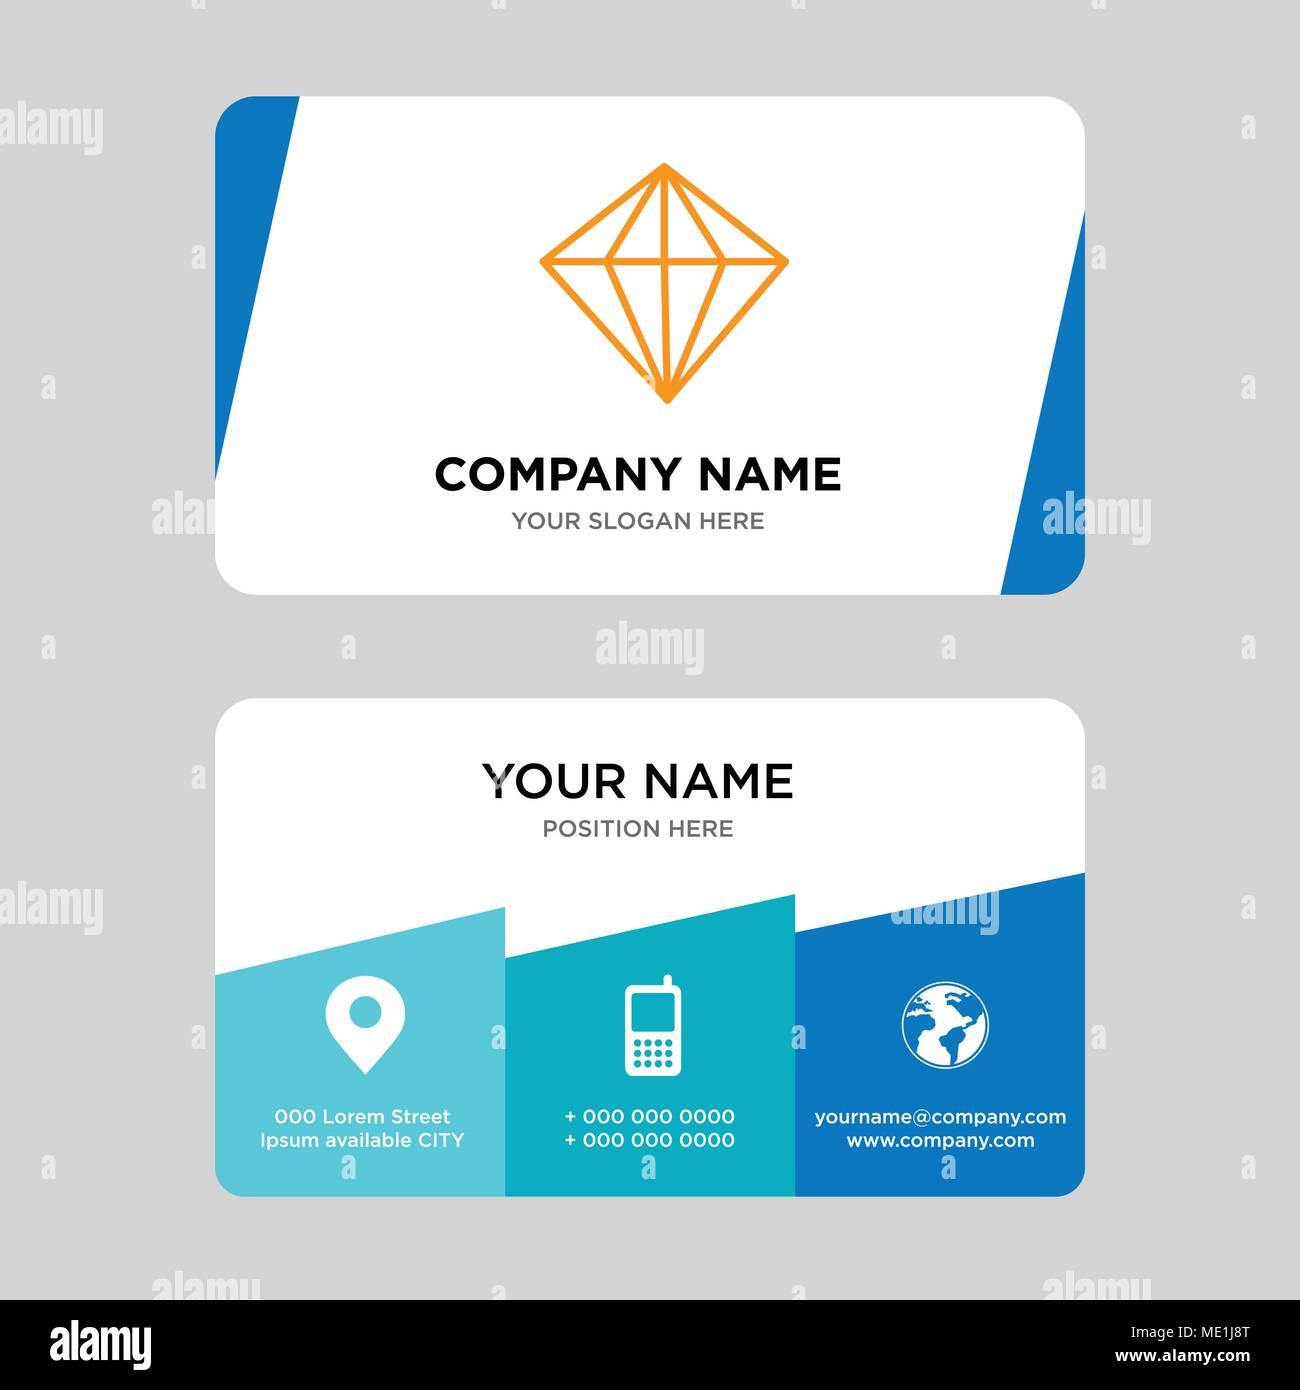 diamond business card design template visiting for your company